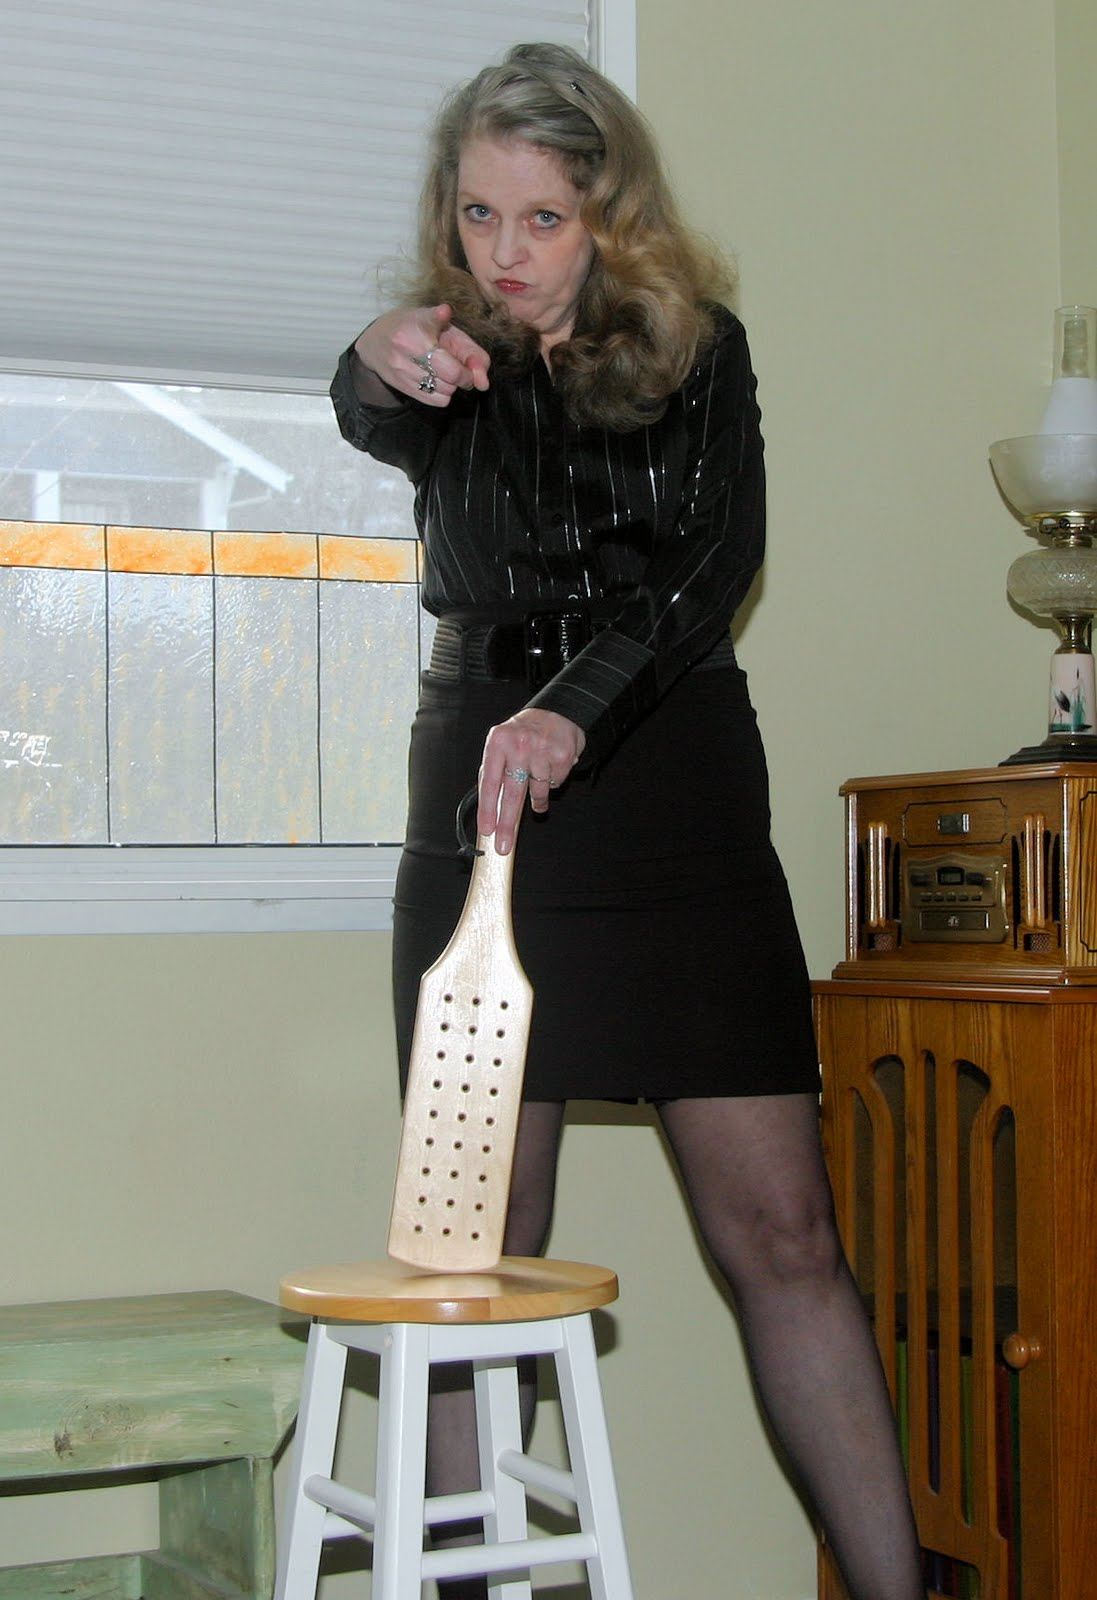 Spank with a paddle